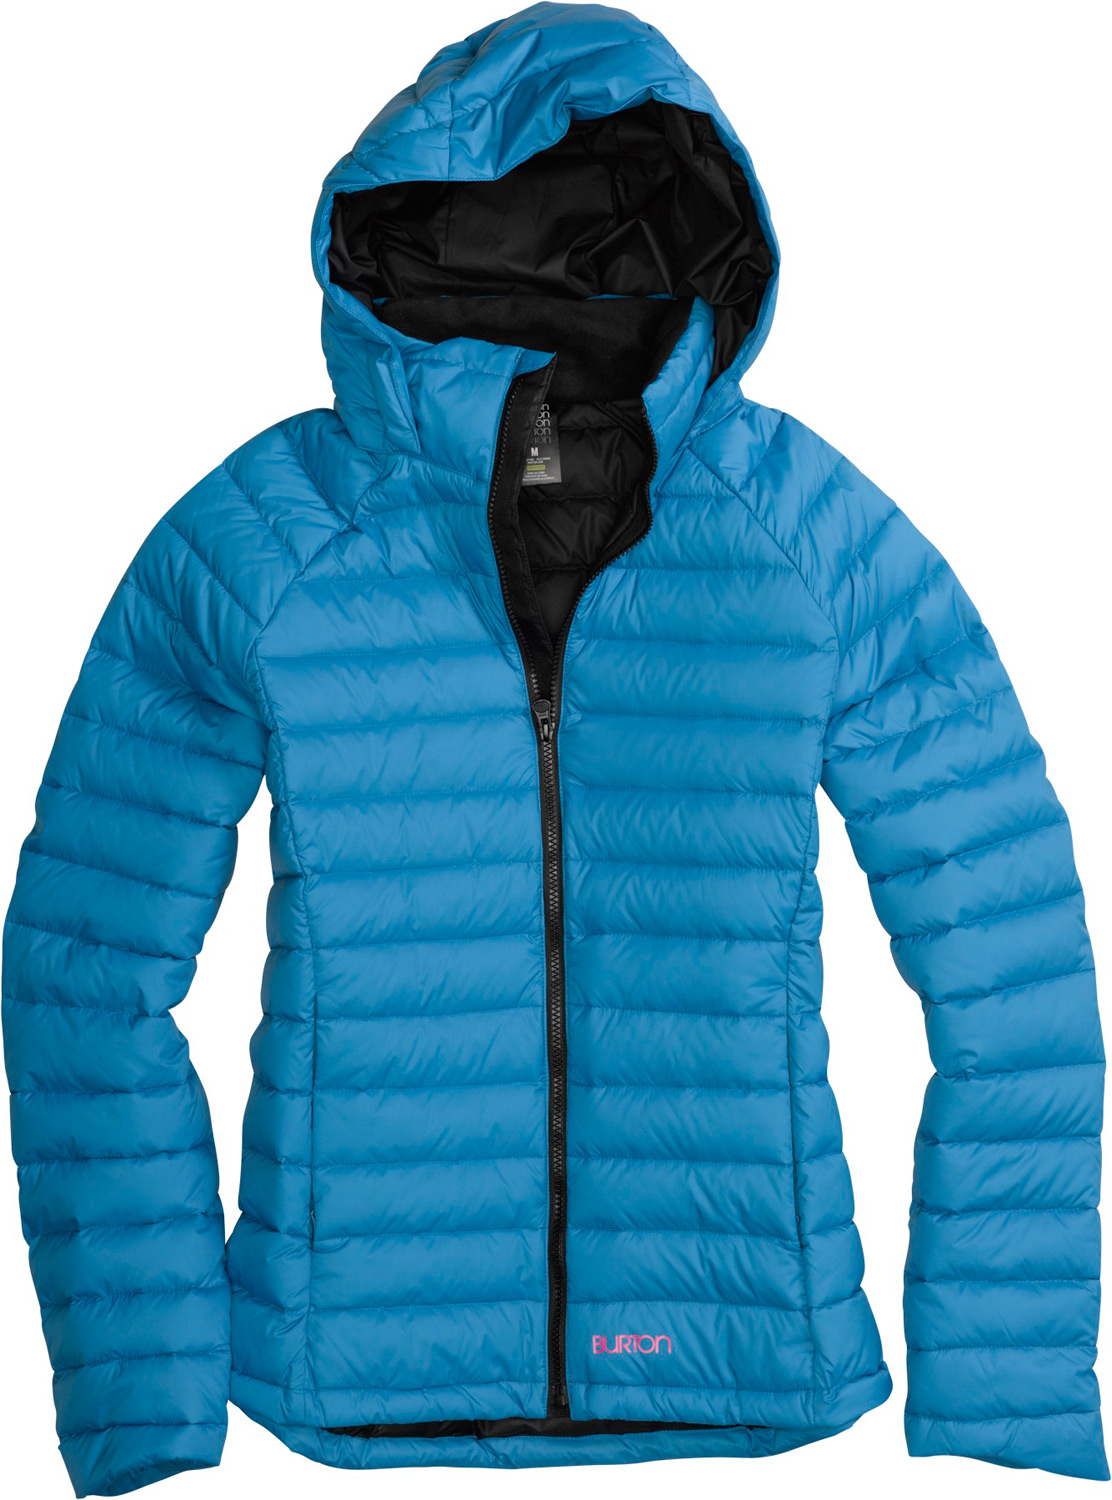 Snowboard Go down. It's the best way to stay warm in an arctic environment.Key Features of the Burton Solace Down Jacket: DRYRIDE Thermex Lightweight DWR Coated Fabric Sig Fit 550 Down Fill Microfleece-Lined Handwarmer Pockets Removable Contour Hood Chafe-Free Chin Guard Hem Cinch Thumbholes on Inner Cuff - $179.95